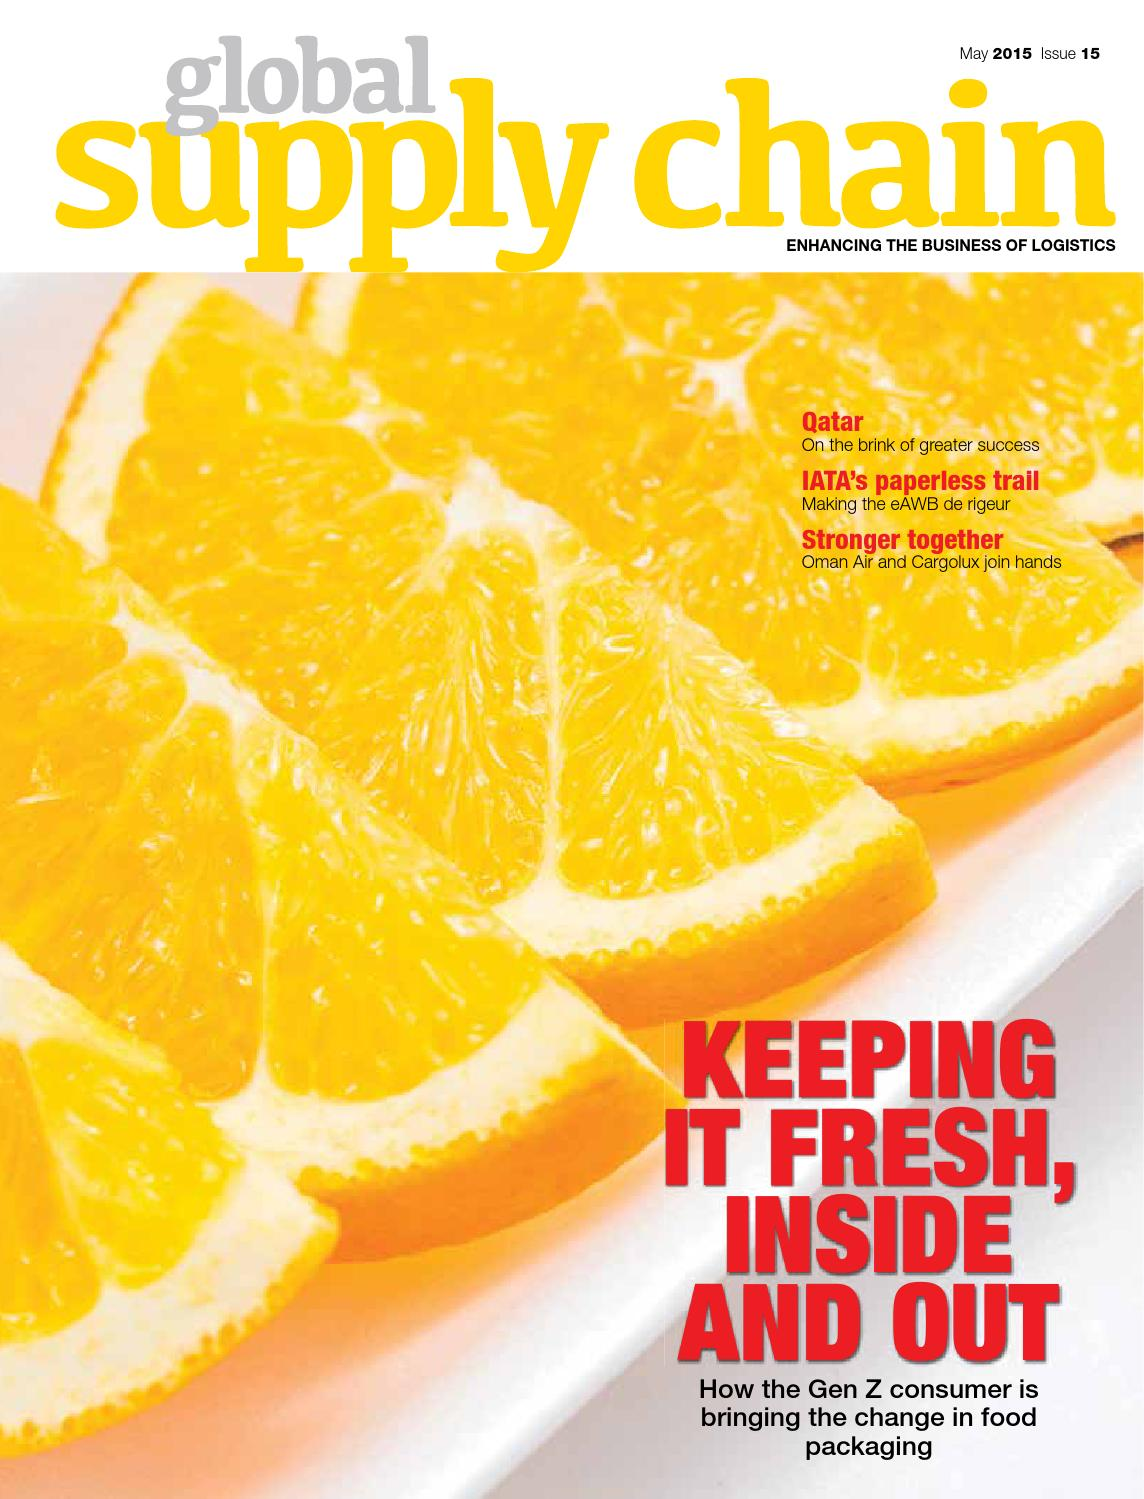 Global Supply Chain May 2015 Issue by GLOBAL SUPPLY CHAIN - issuu